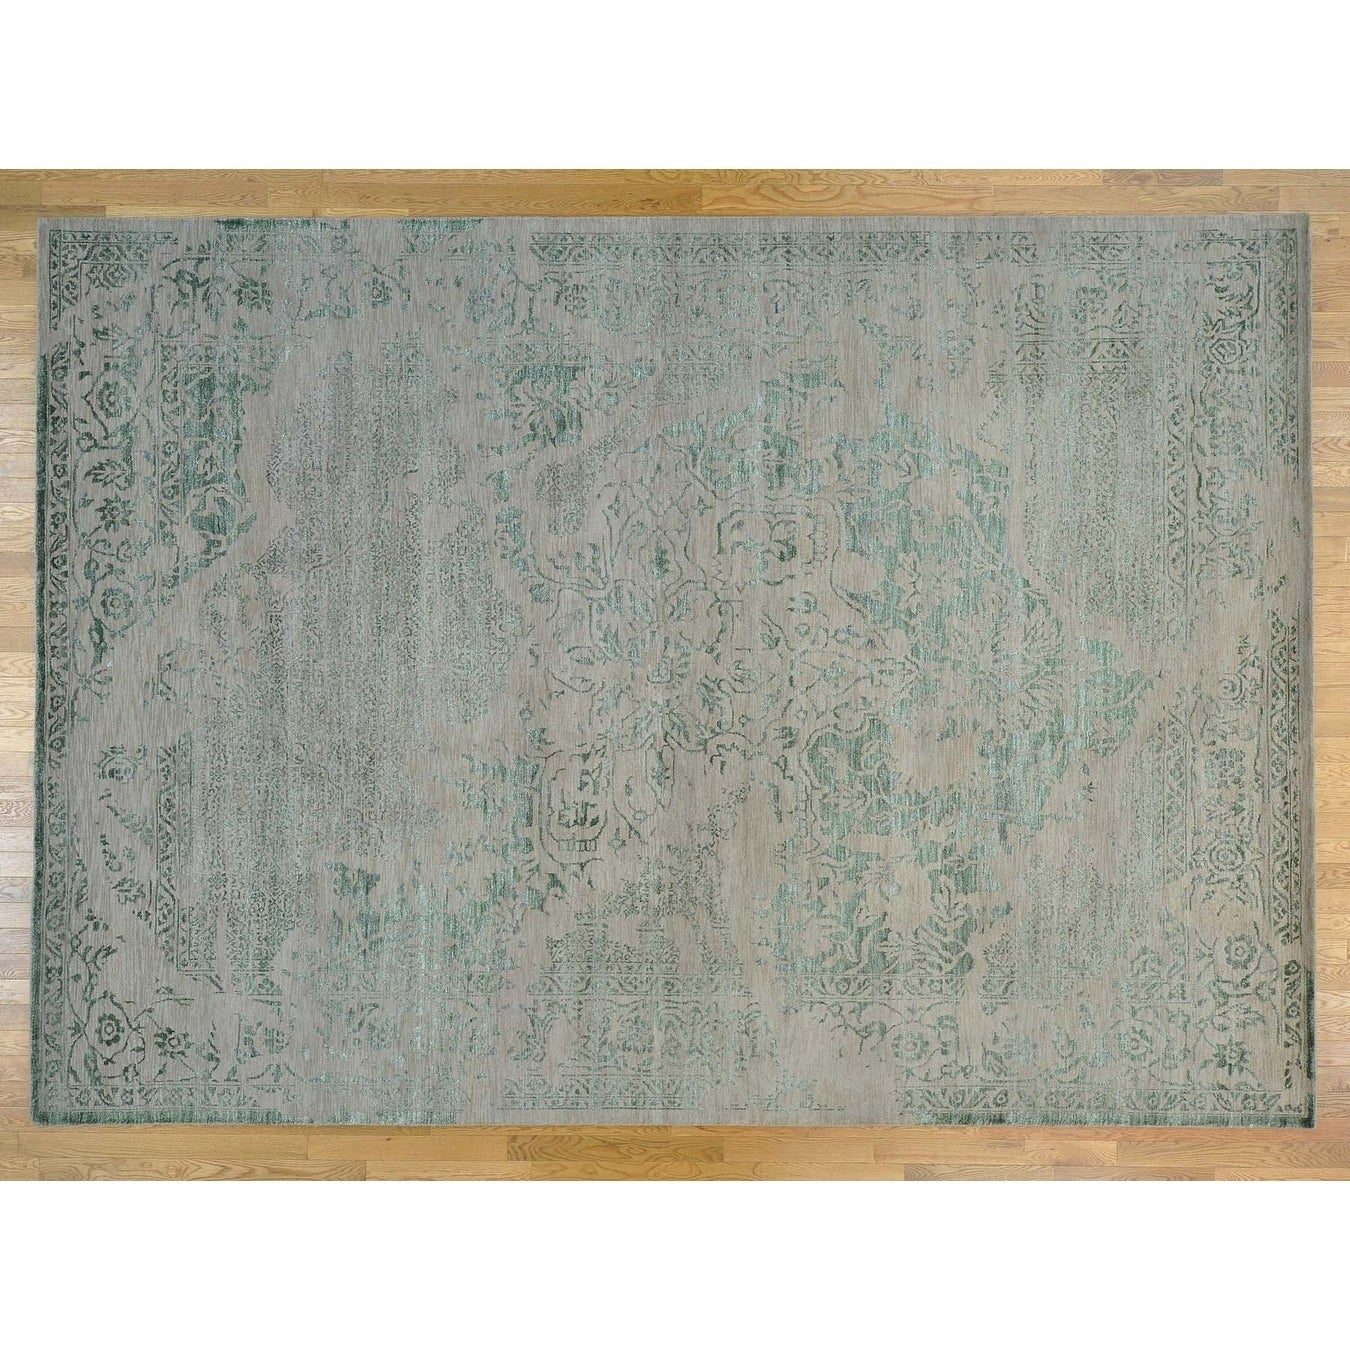 Hand Knotted Green Heriz with Wool & Silk Oriental Rug - 910 x 1310